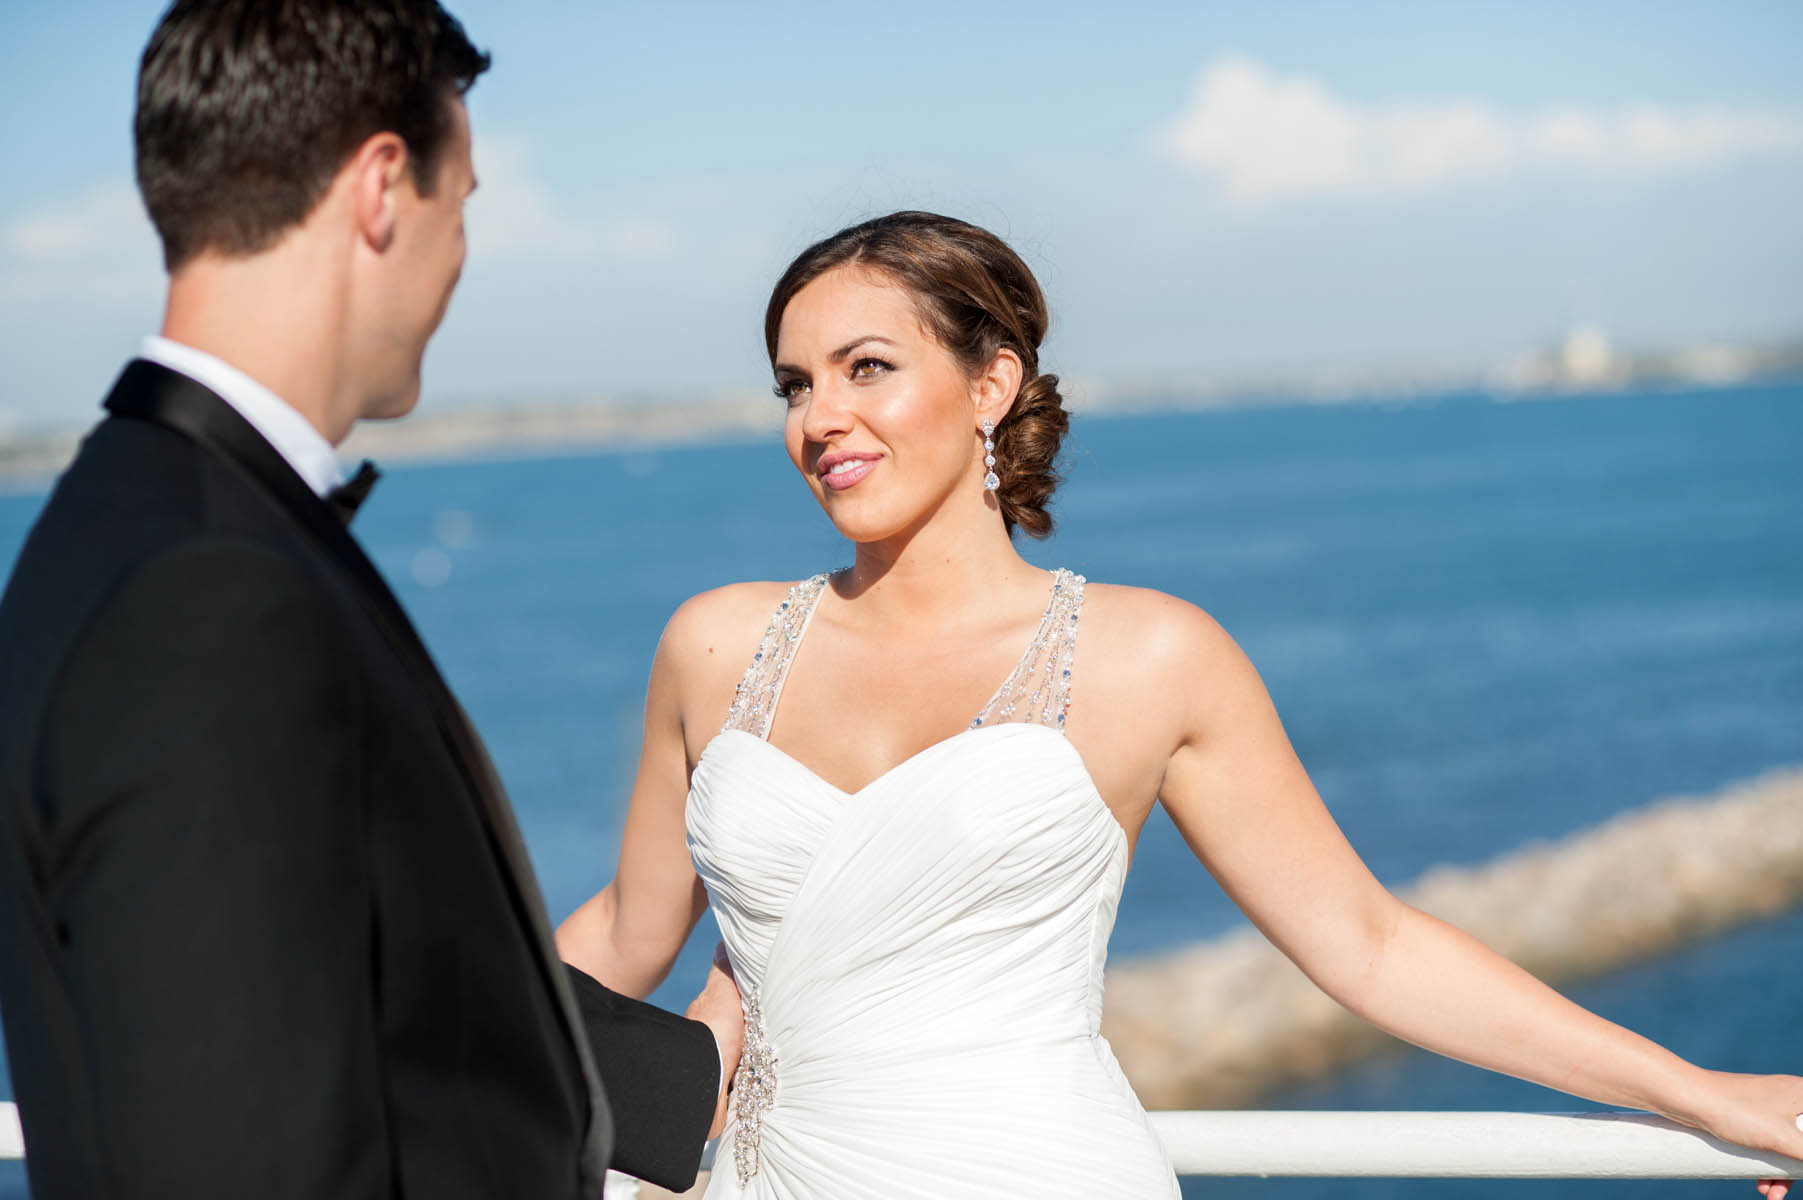 The bride leans against the railing of the ships deck and looks deeply into the eyes of her groom. The bright blue color of the sea and sky fill the background behind her.